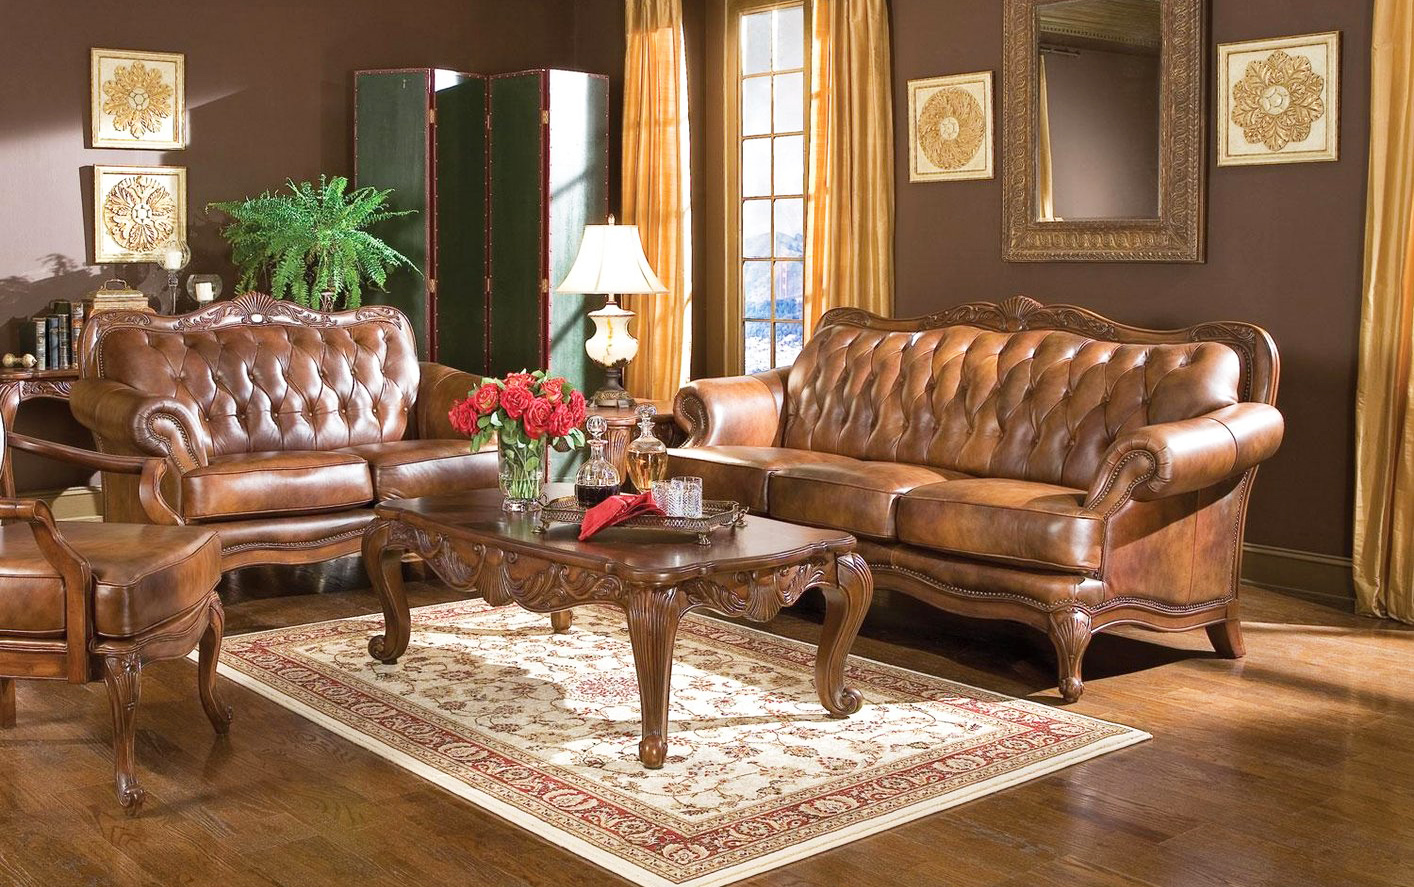 leather-furniture-with-vintage-living-room-furniture-sets-with-tufted-leather-sofa-design-and-wood-coffee-table